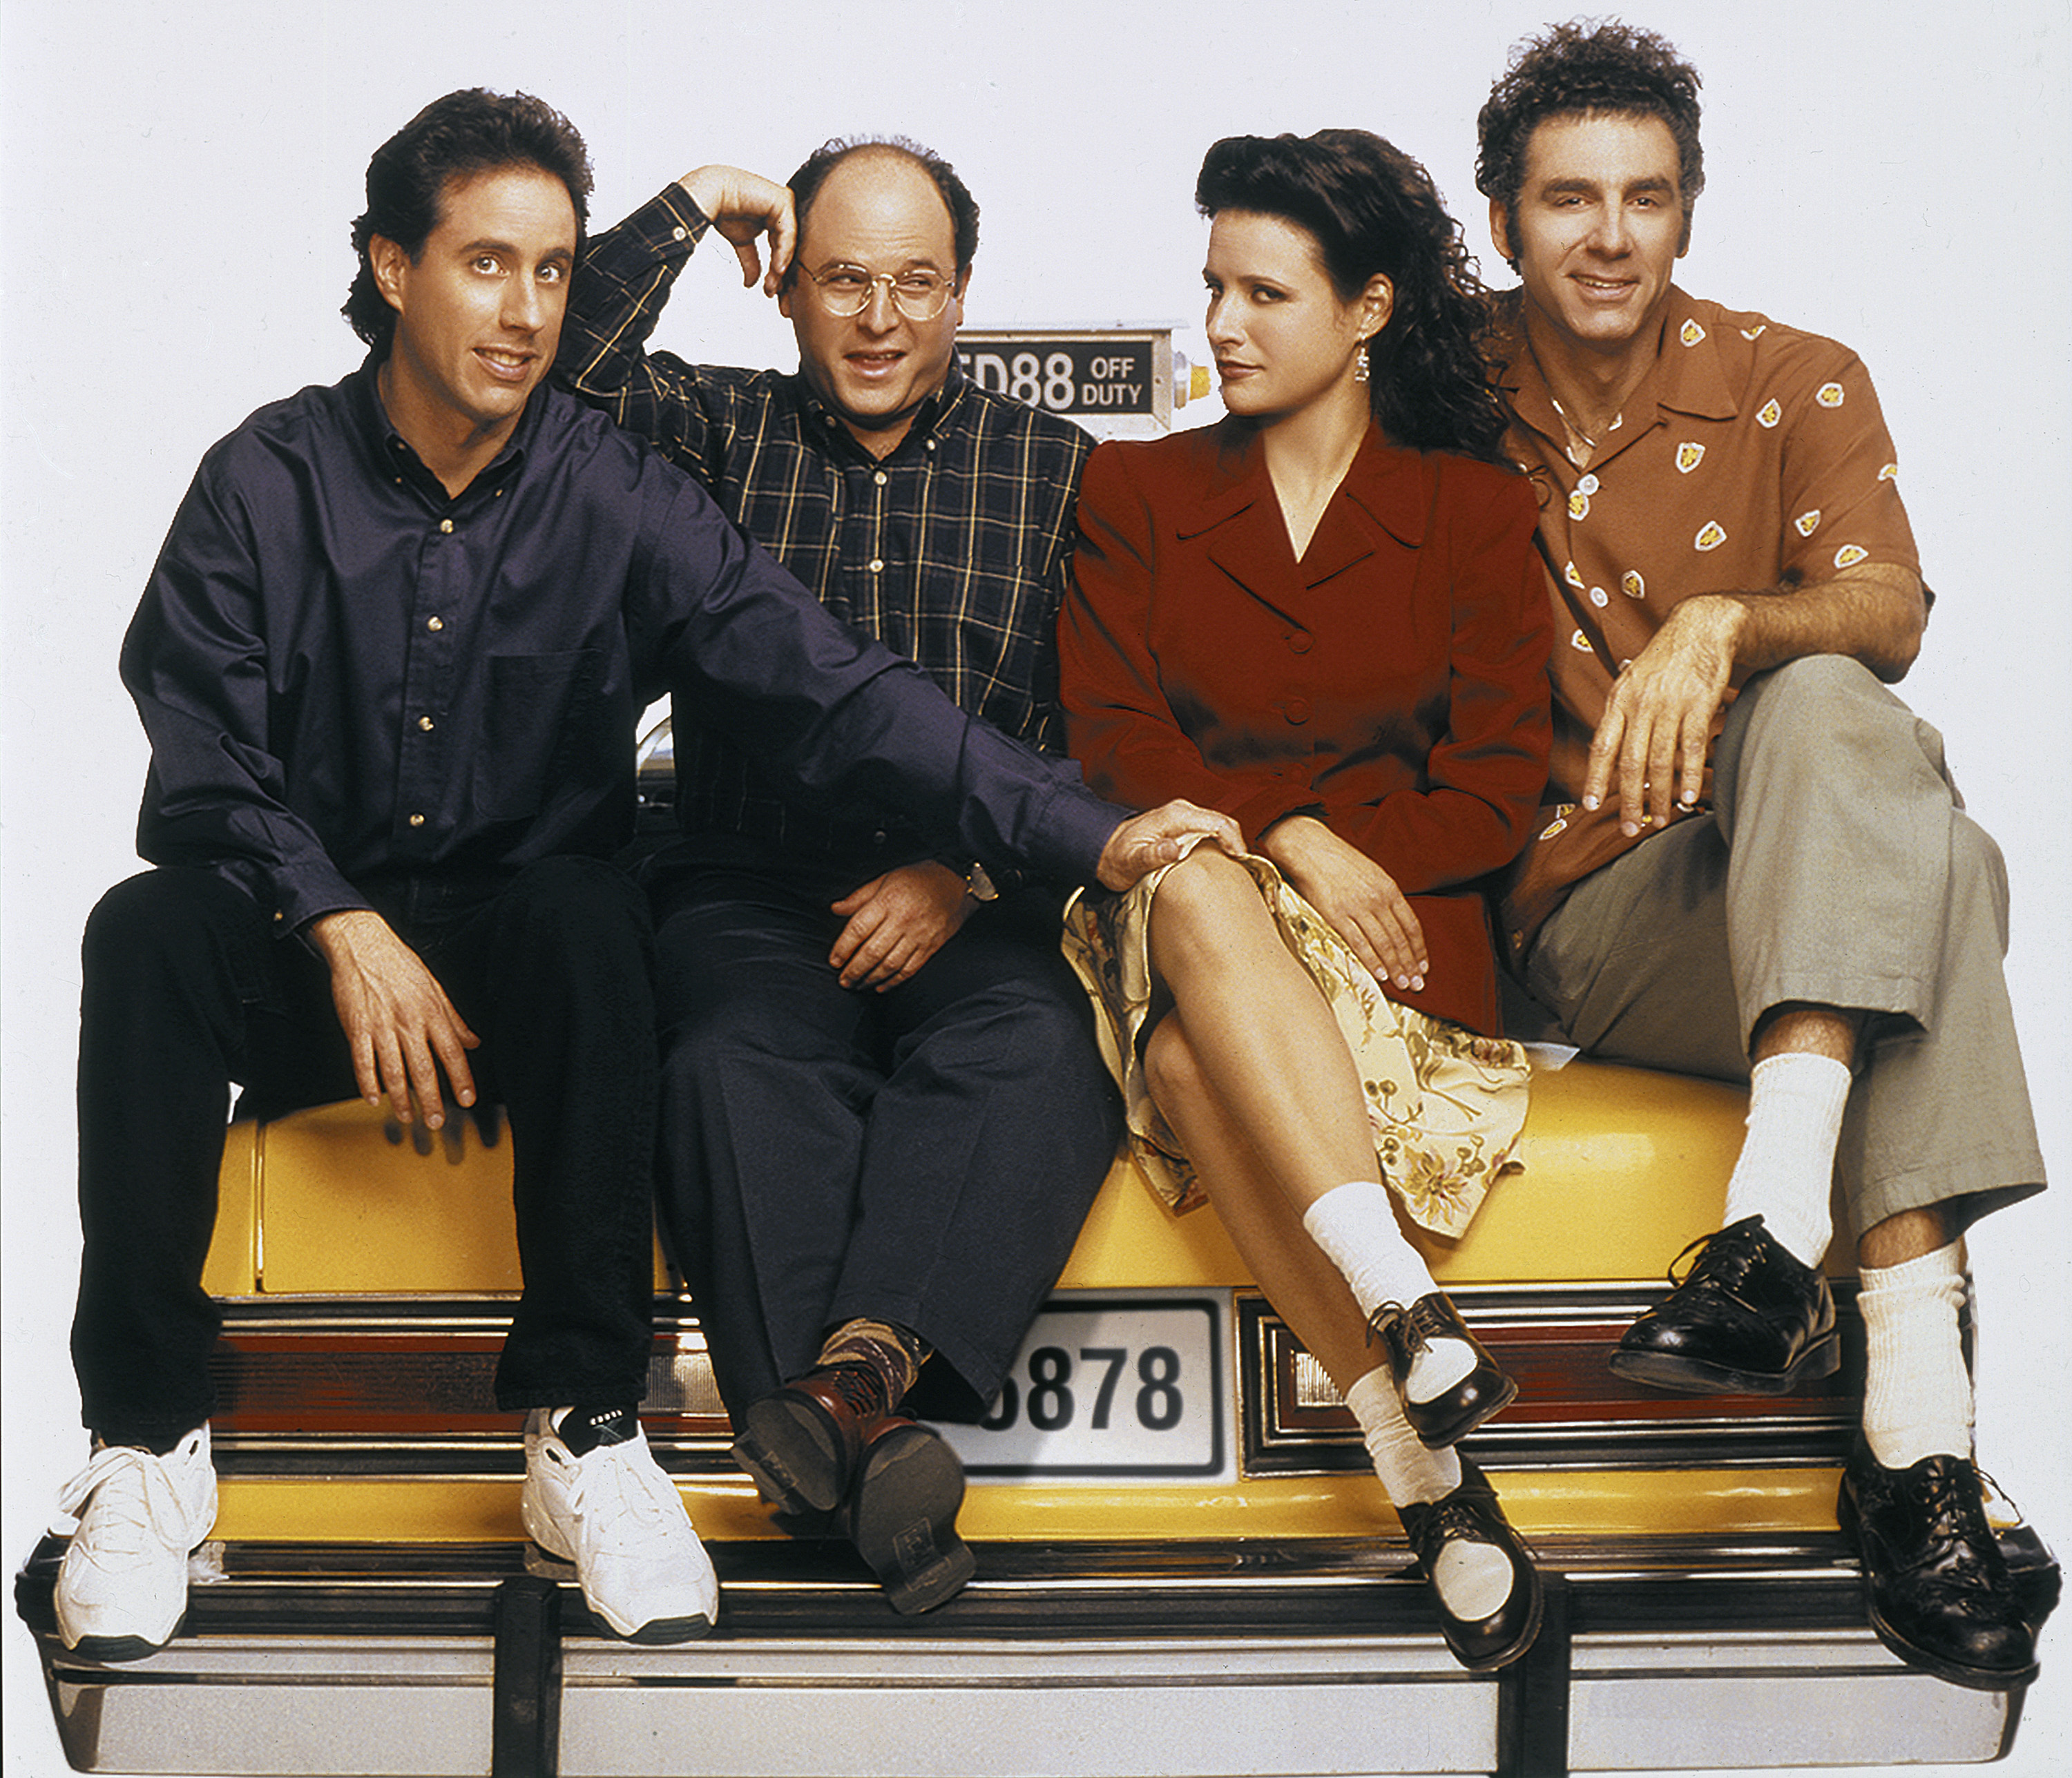 3a9968c9 Close Talkers and Double Dippers: 15 Phrases 'Seinfeld' Spawned ...